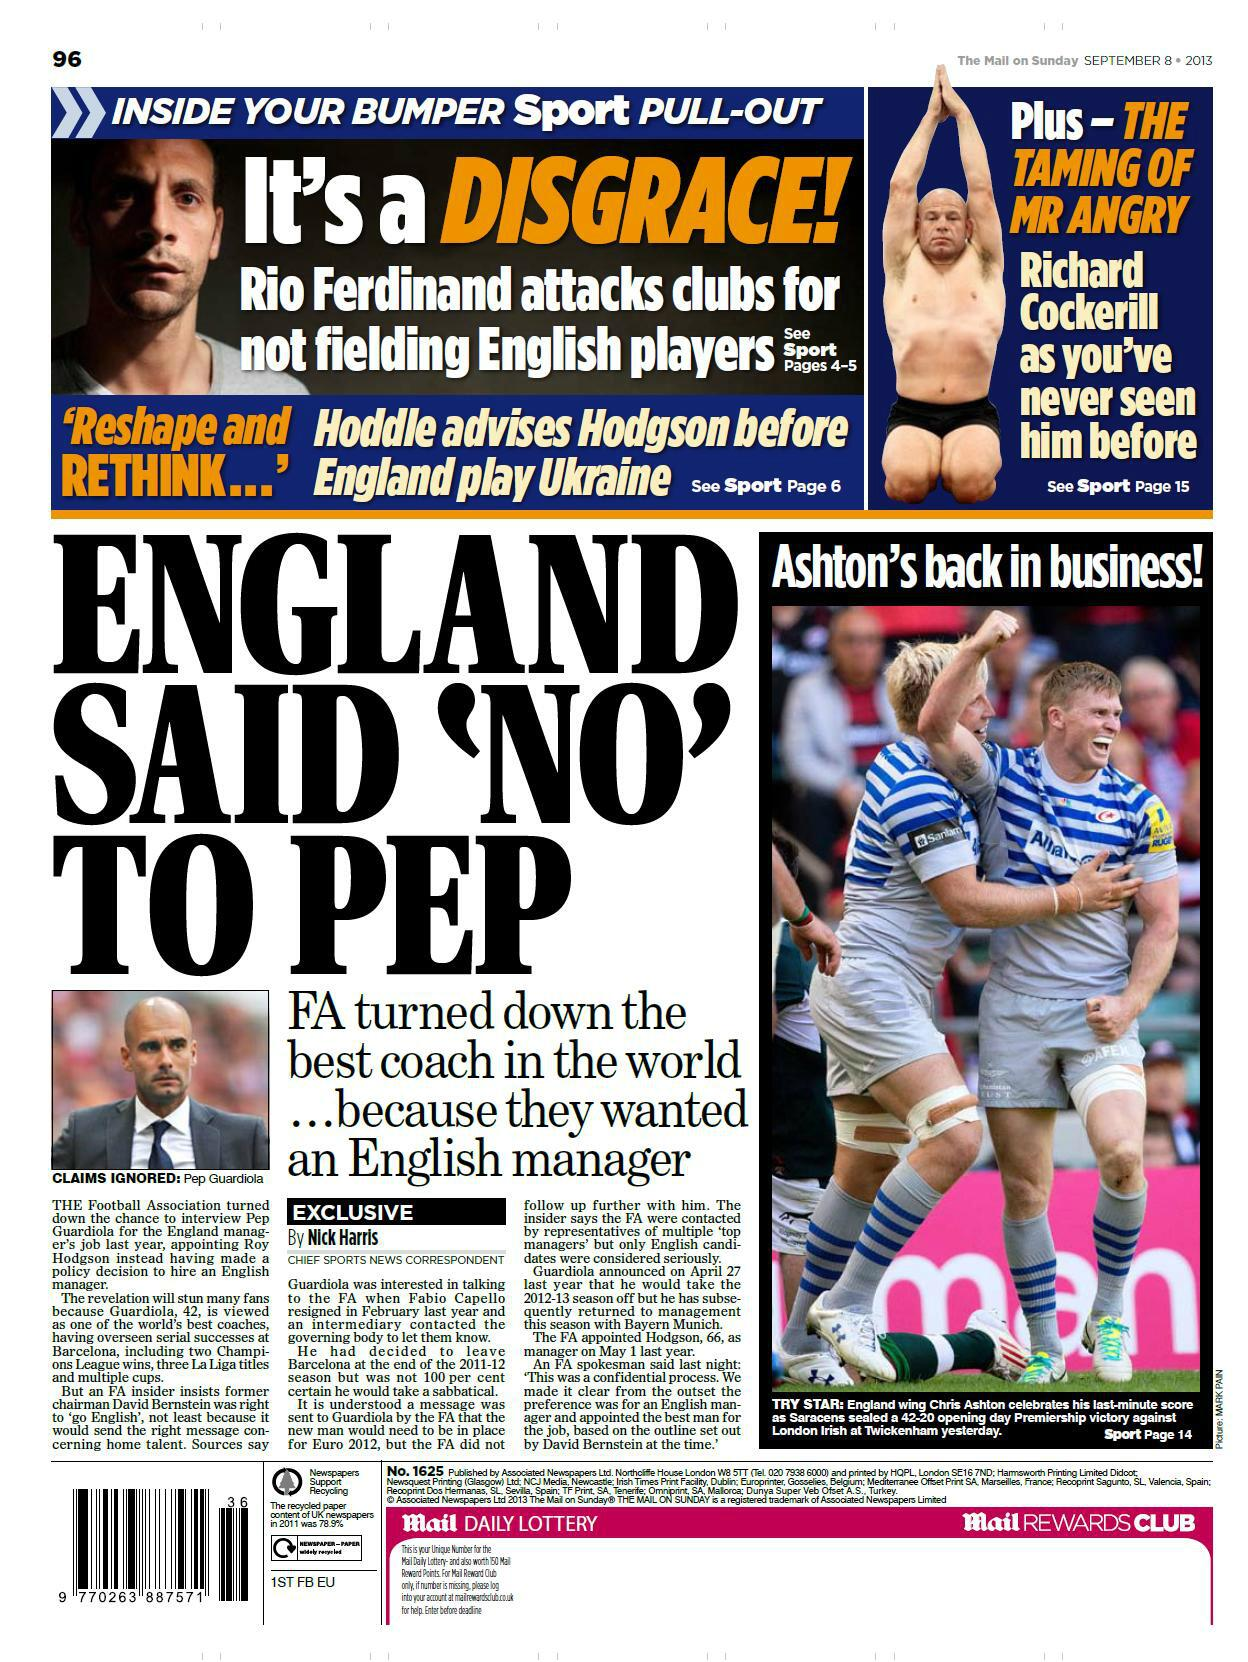 FA rejected Guardiolas application to become England boss because he was Spanish [Mail on Sunday]